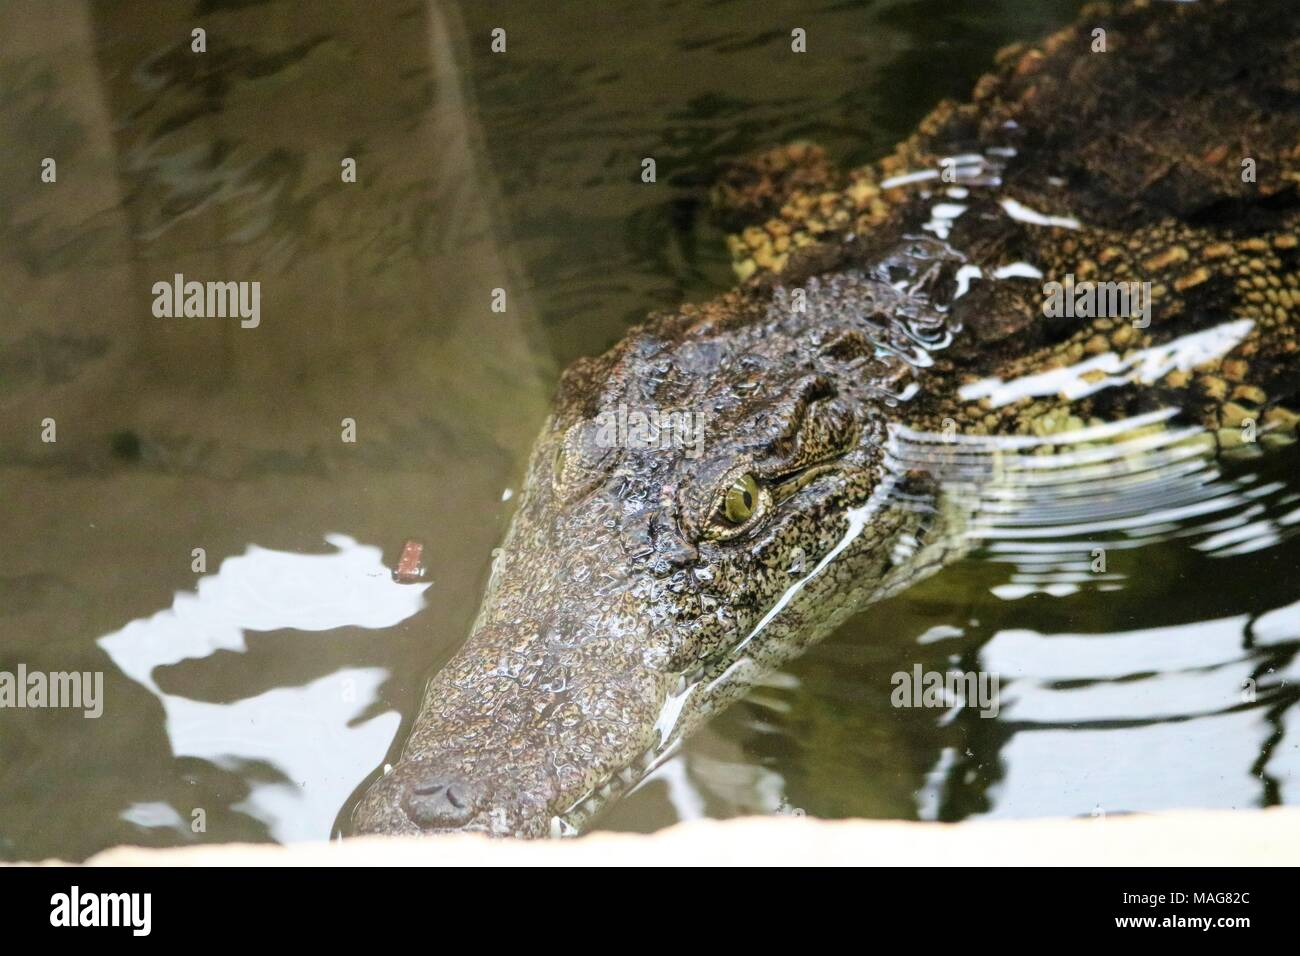 Freshwater Crocodile in water at tourist attraction - Stock Image